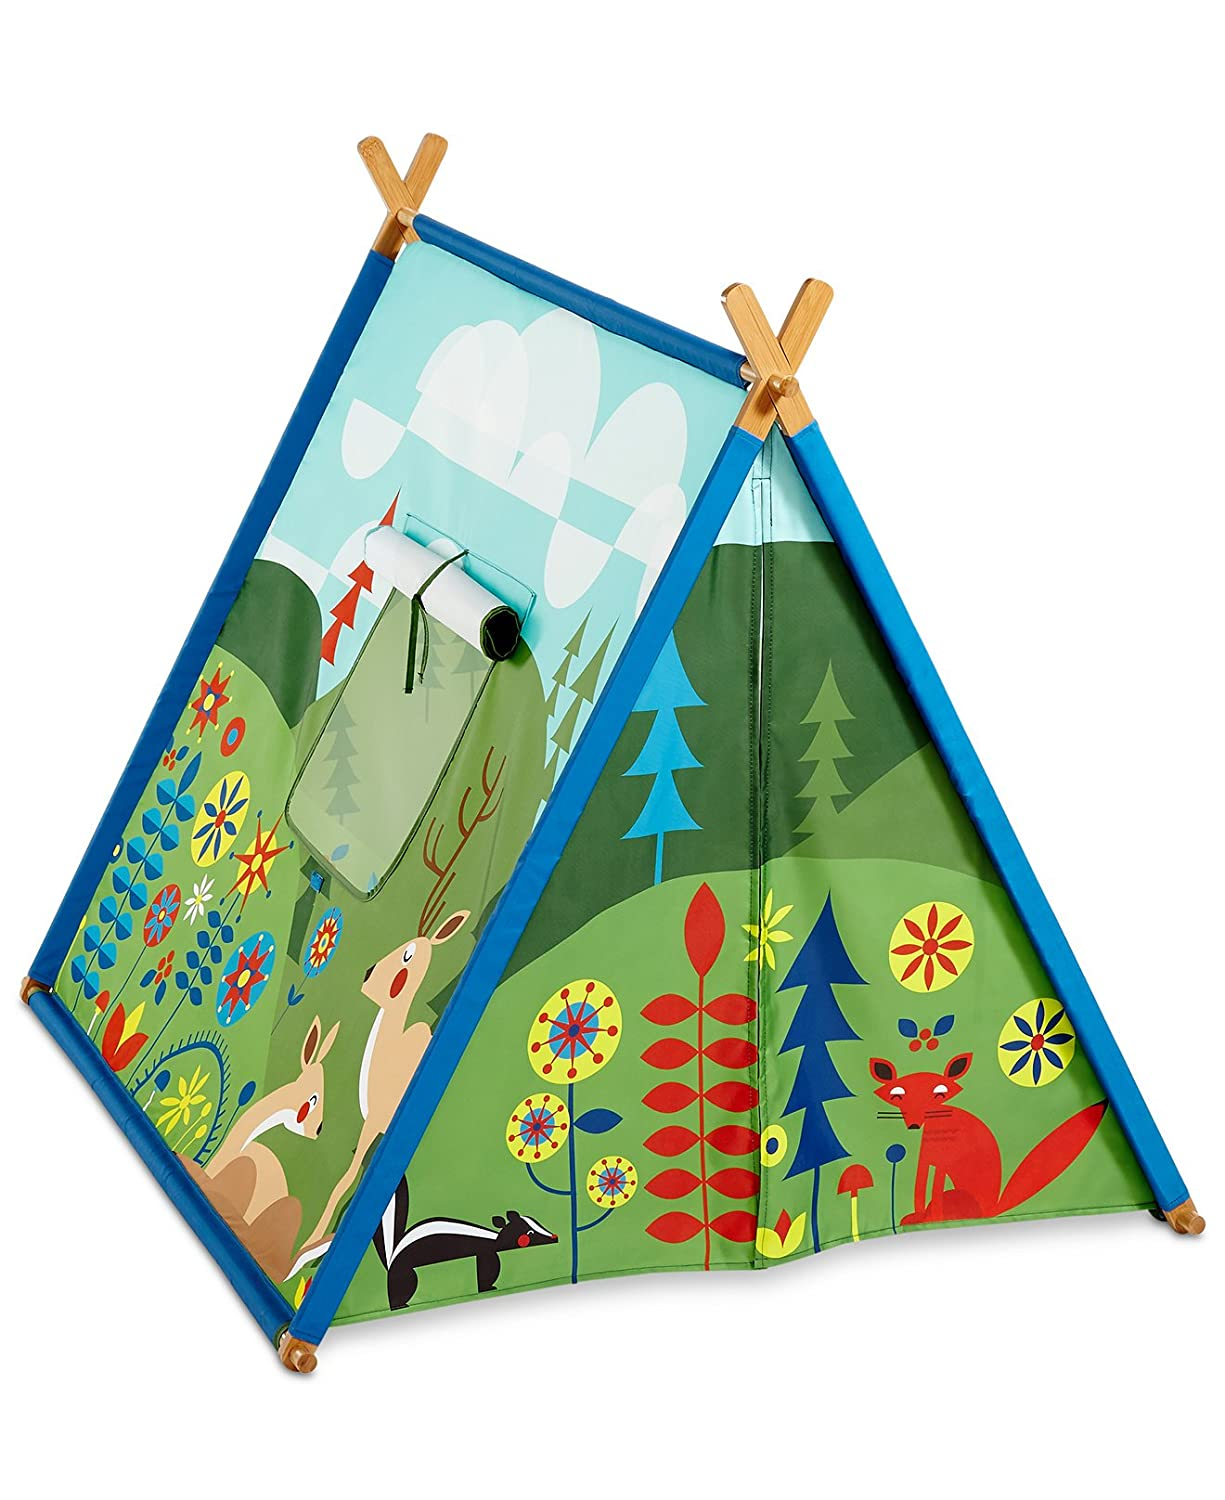 Amazon.com Kid Made Modern Friendly Fields Woodland Childrenu0027s Play Fort Tent Toys u0026 Games  sc 1 st  Amazon.com & Amazon.com: Kid Made Modern Friendly Fields Woodland Childrenu0027s Play ...